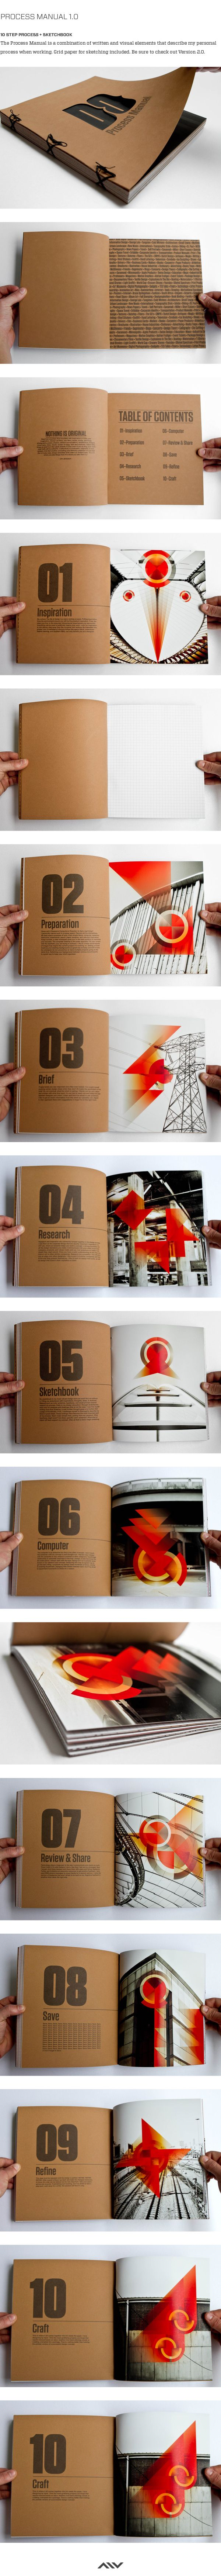 Process Manual Volume 1.0 by Dan Ogren | Check out more great content at: www.emrld14.com